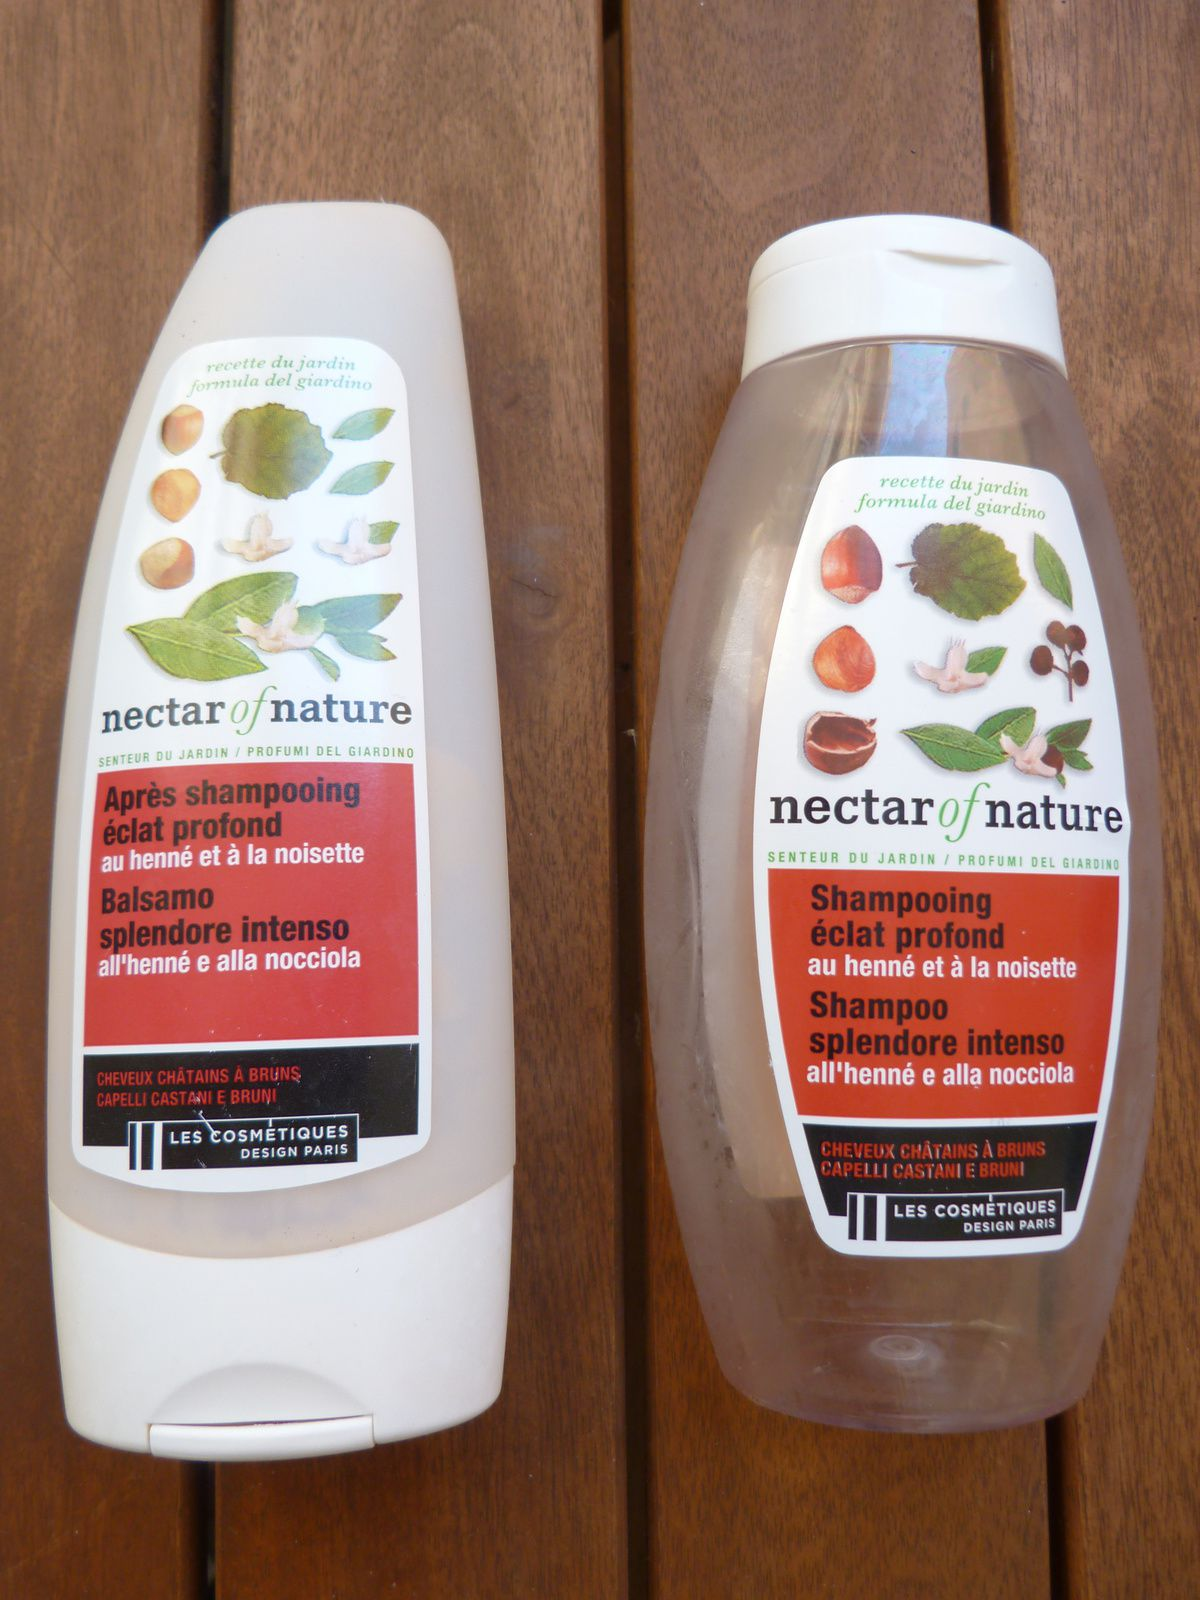 Nectar of Nature by Carrefour